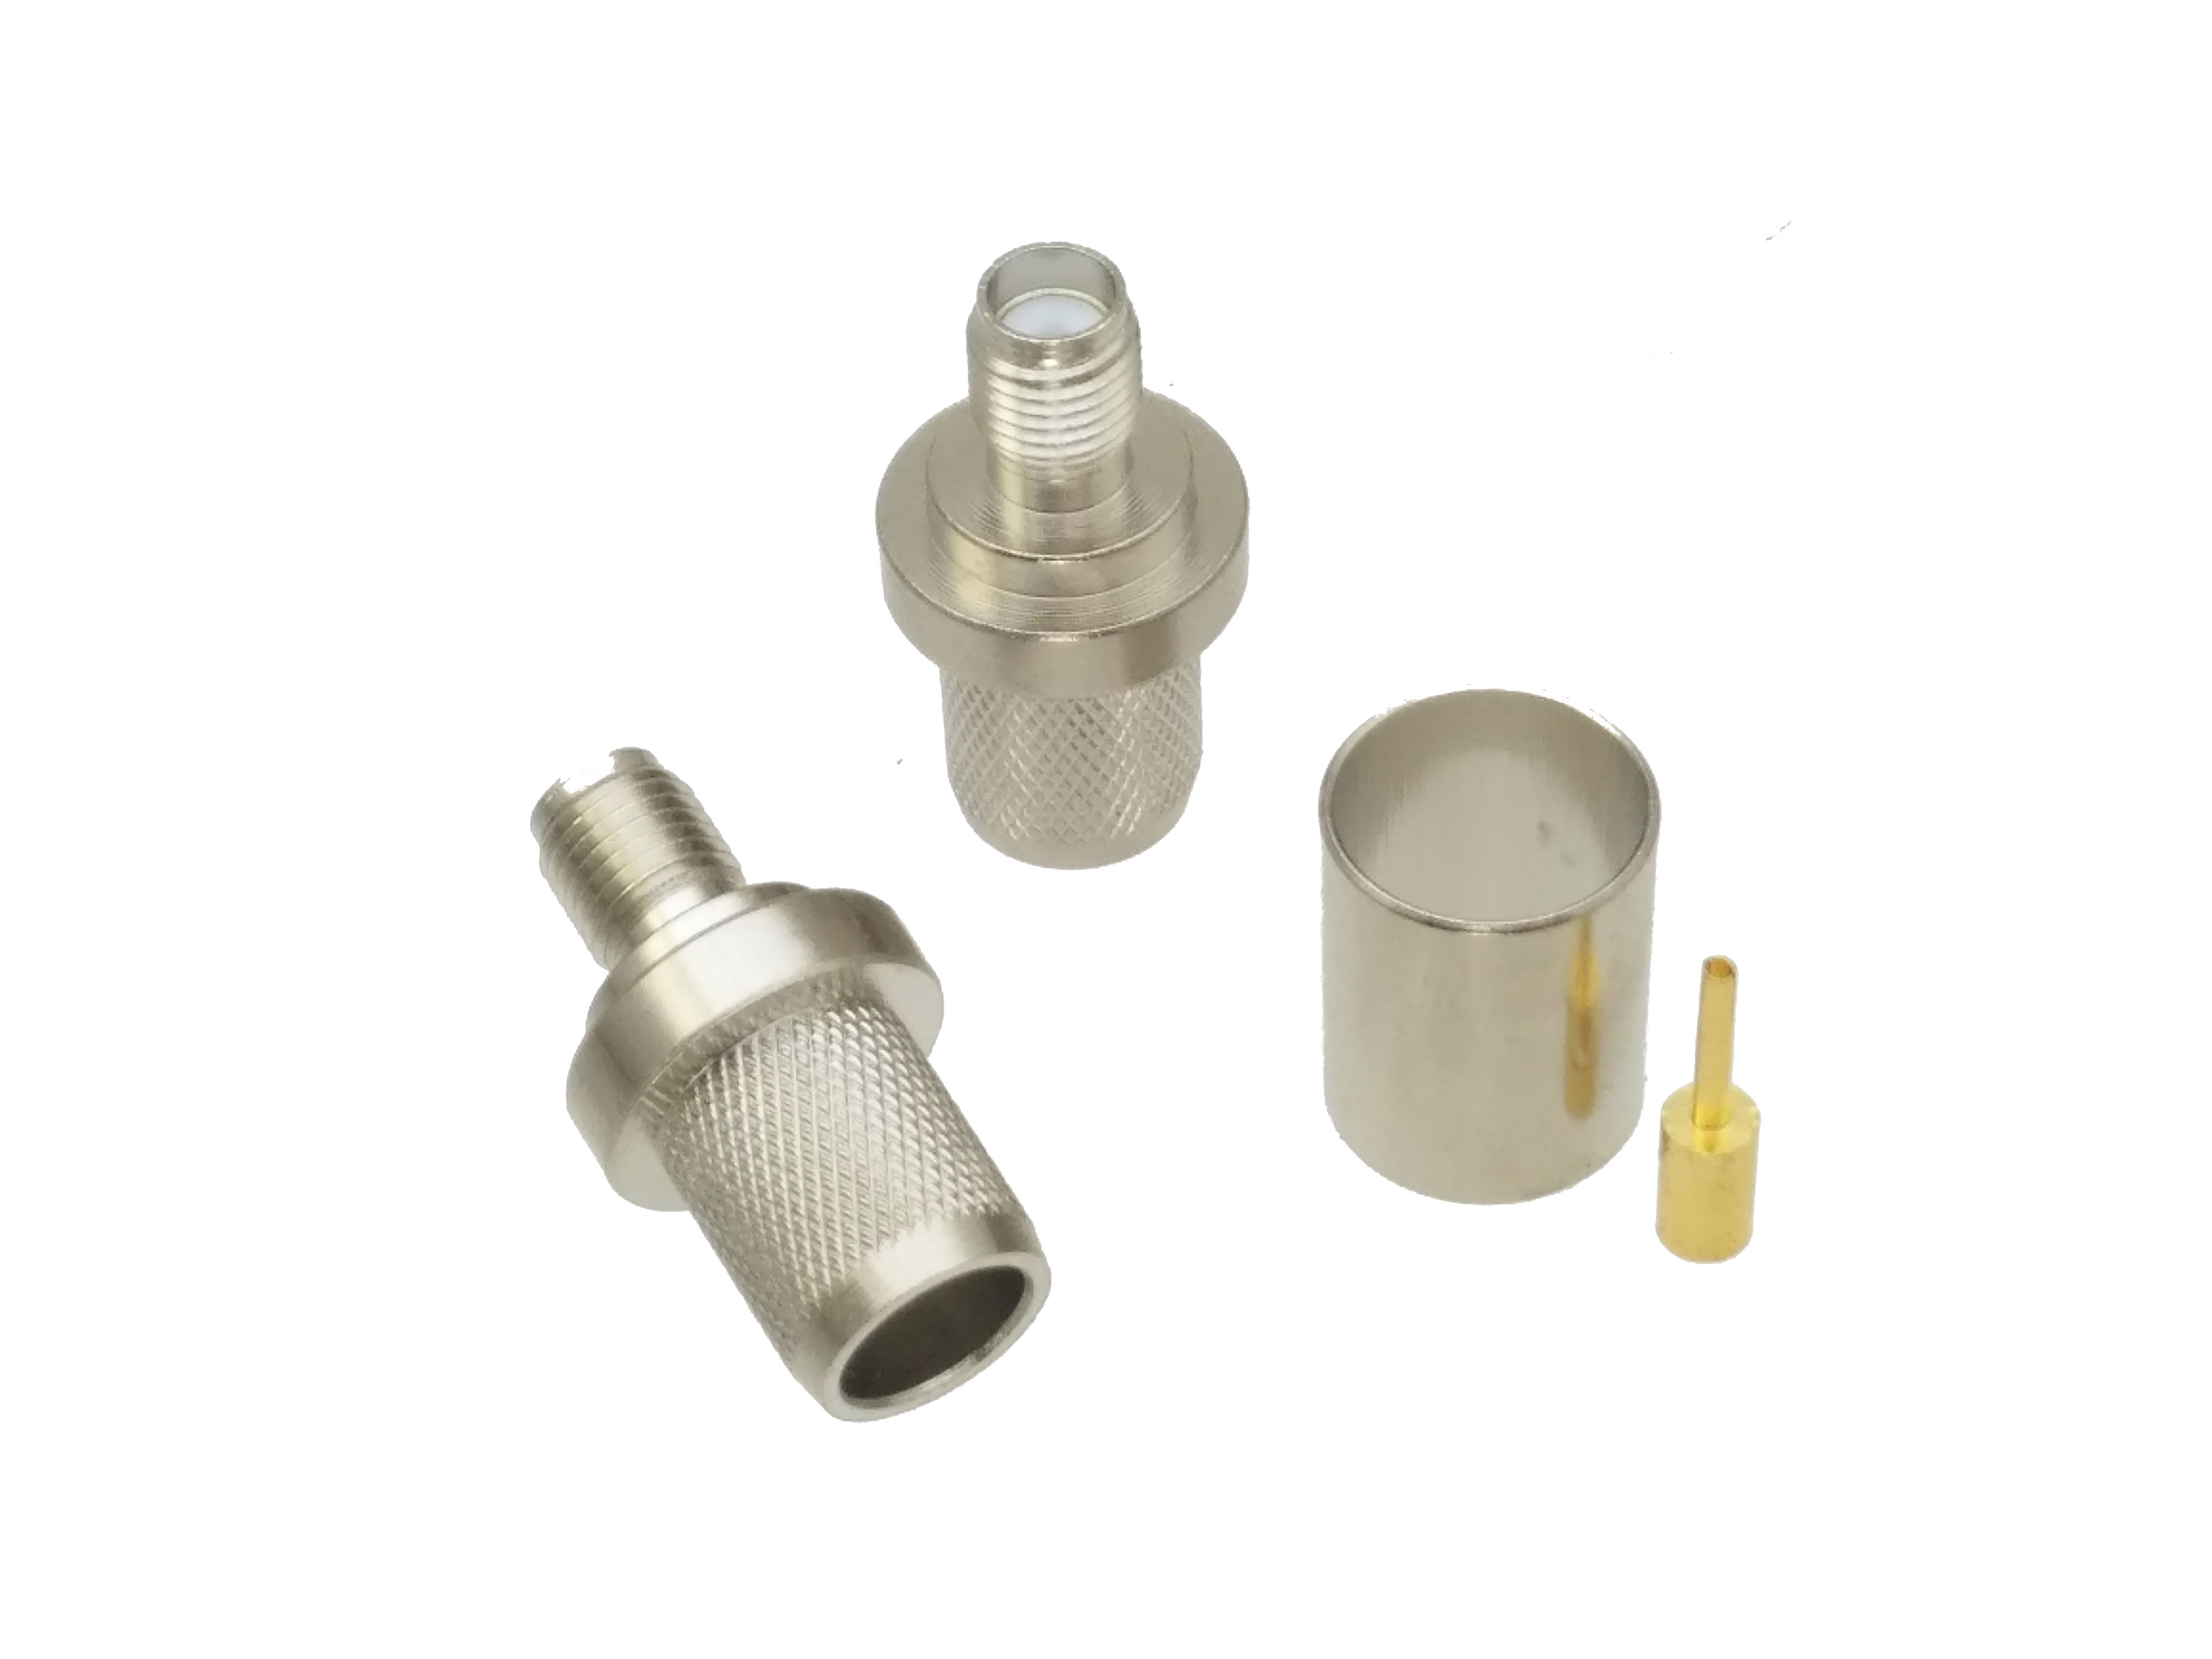 Connector SMA Female Jack Crimp RG8 RG213 LMR400 RG214 Cable Nickel Plated